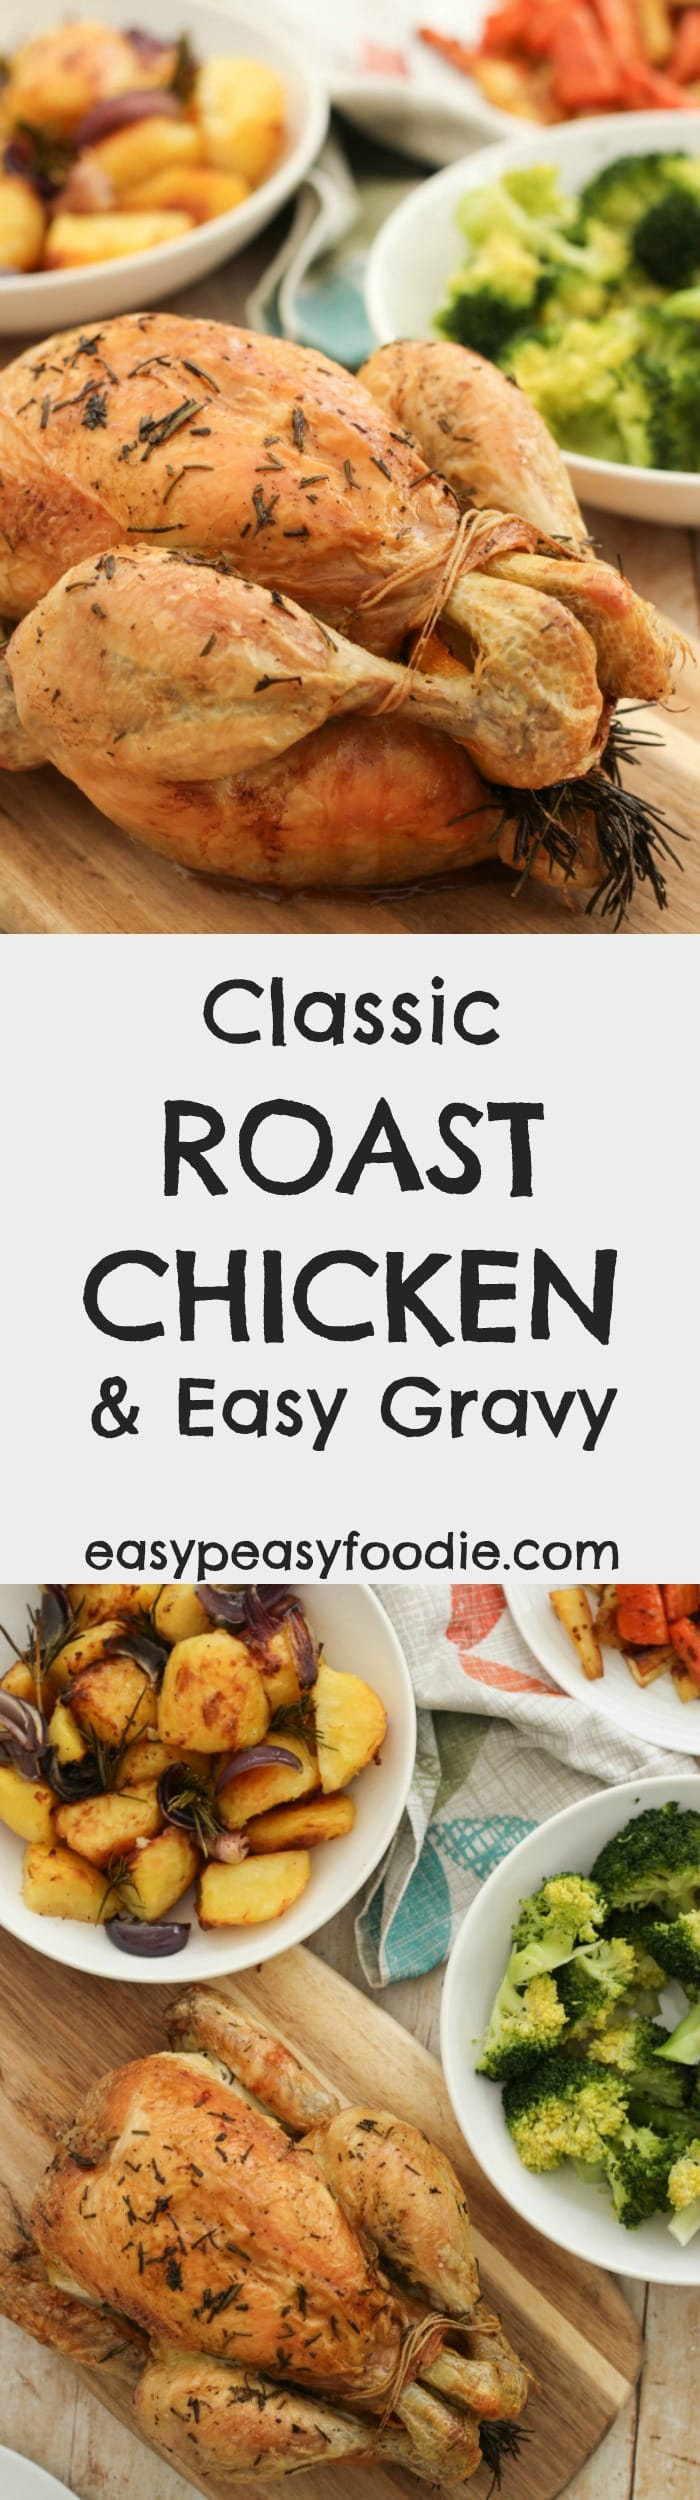 An easy peasy, stress free version of Classic Roast Chicken and Homemade Gravy that anyone can make...and only 10 minutes hands on time! #chicken #roastchicken #chickengravy #gravy #lemon #lemonchicken #rosemary #herbchicken #roast #roastdinners #familydinners #easypeasyfoodie